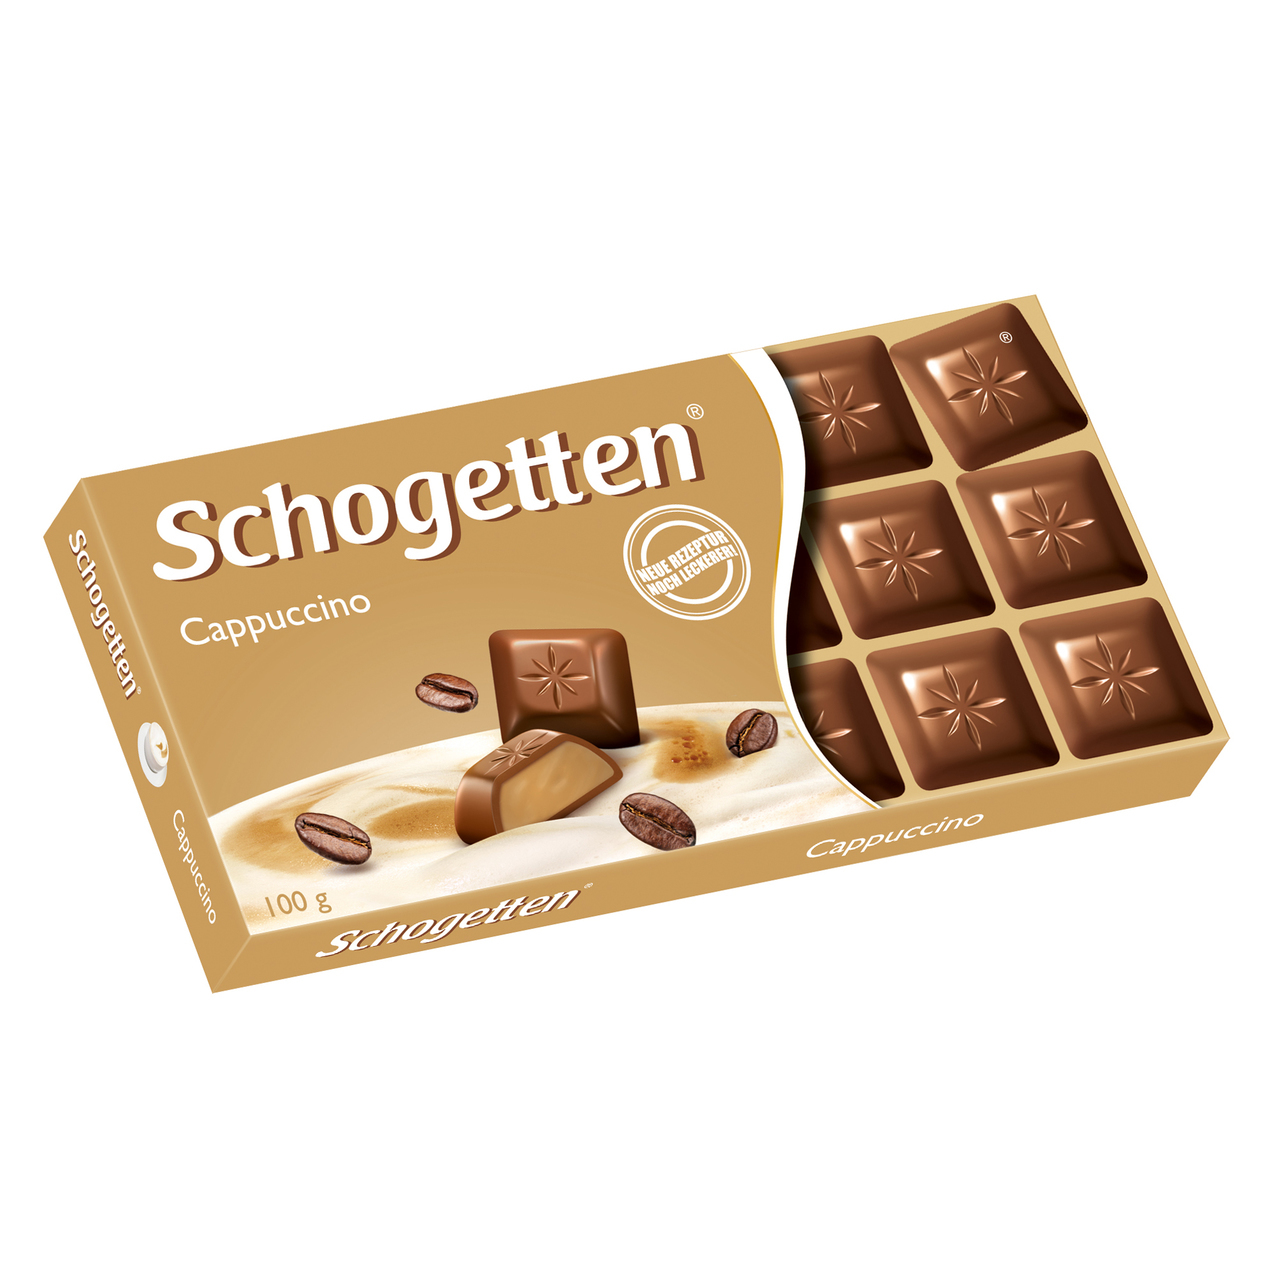 Wholesale Schogetten Cappuccino Chocolate